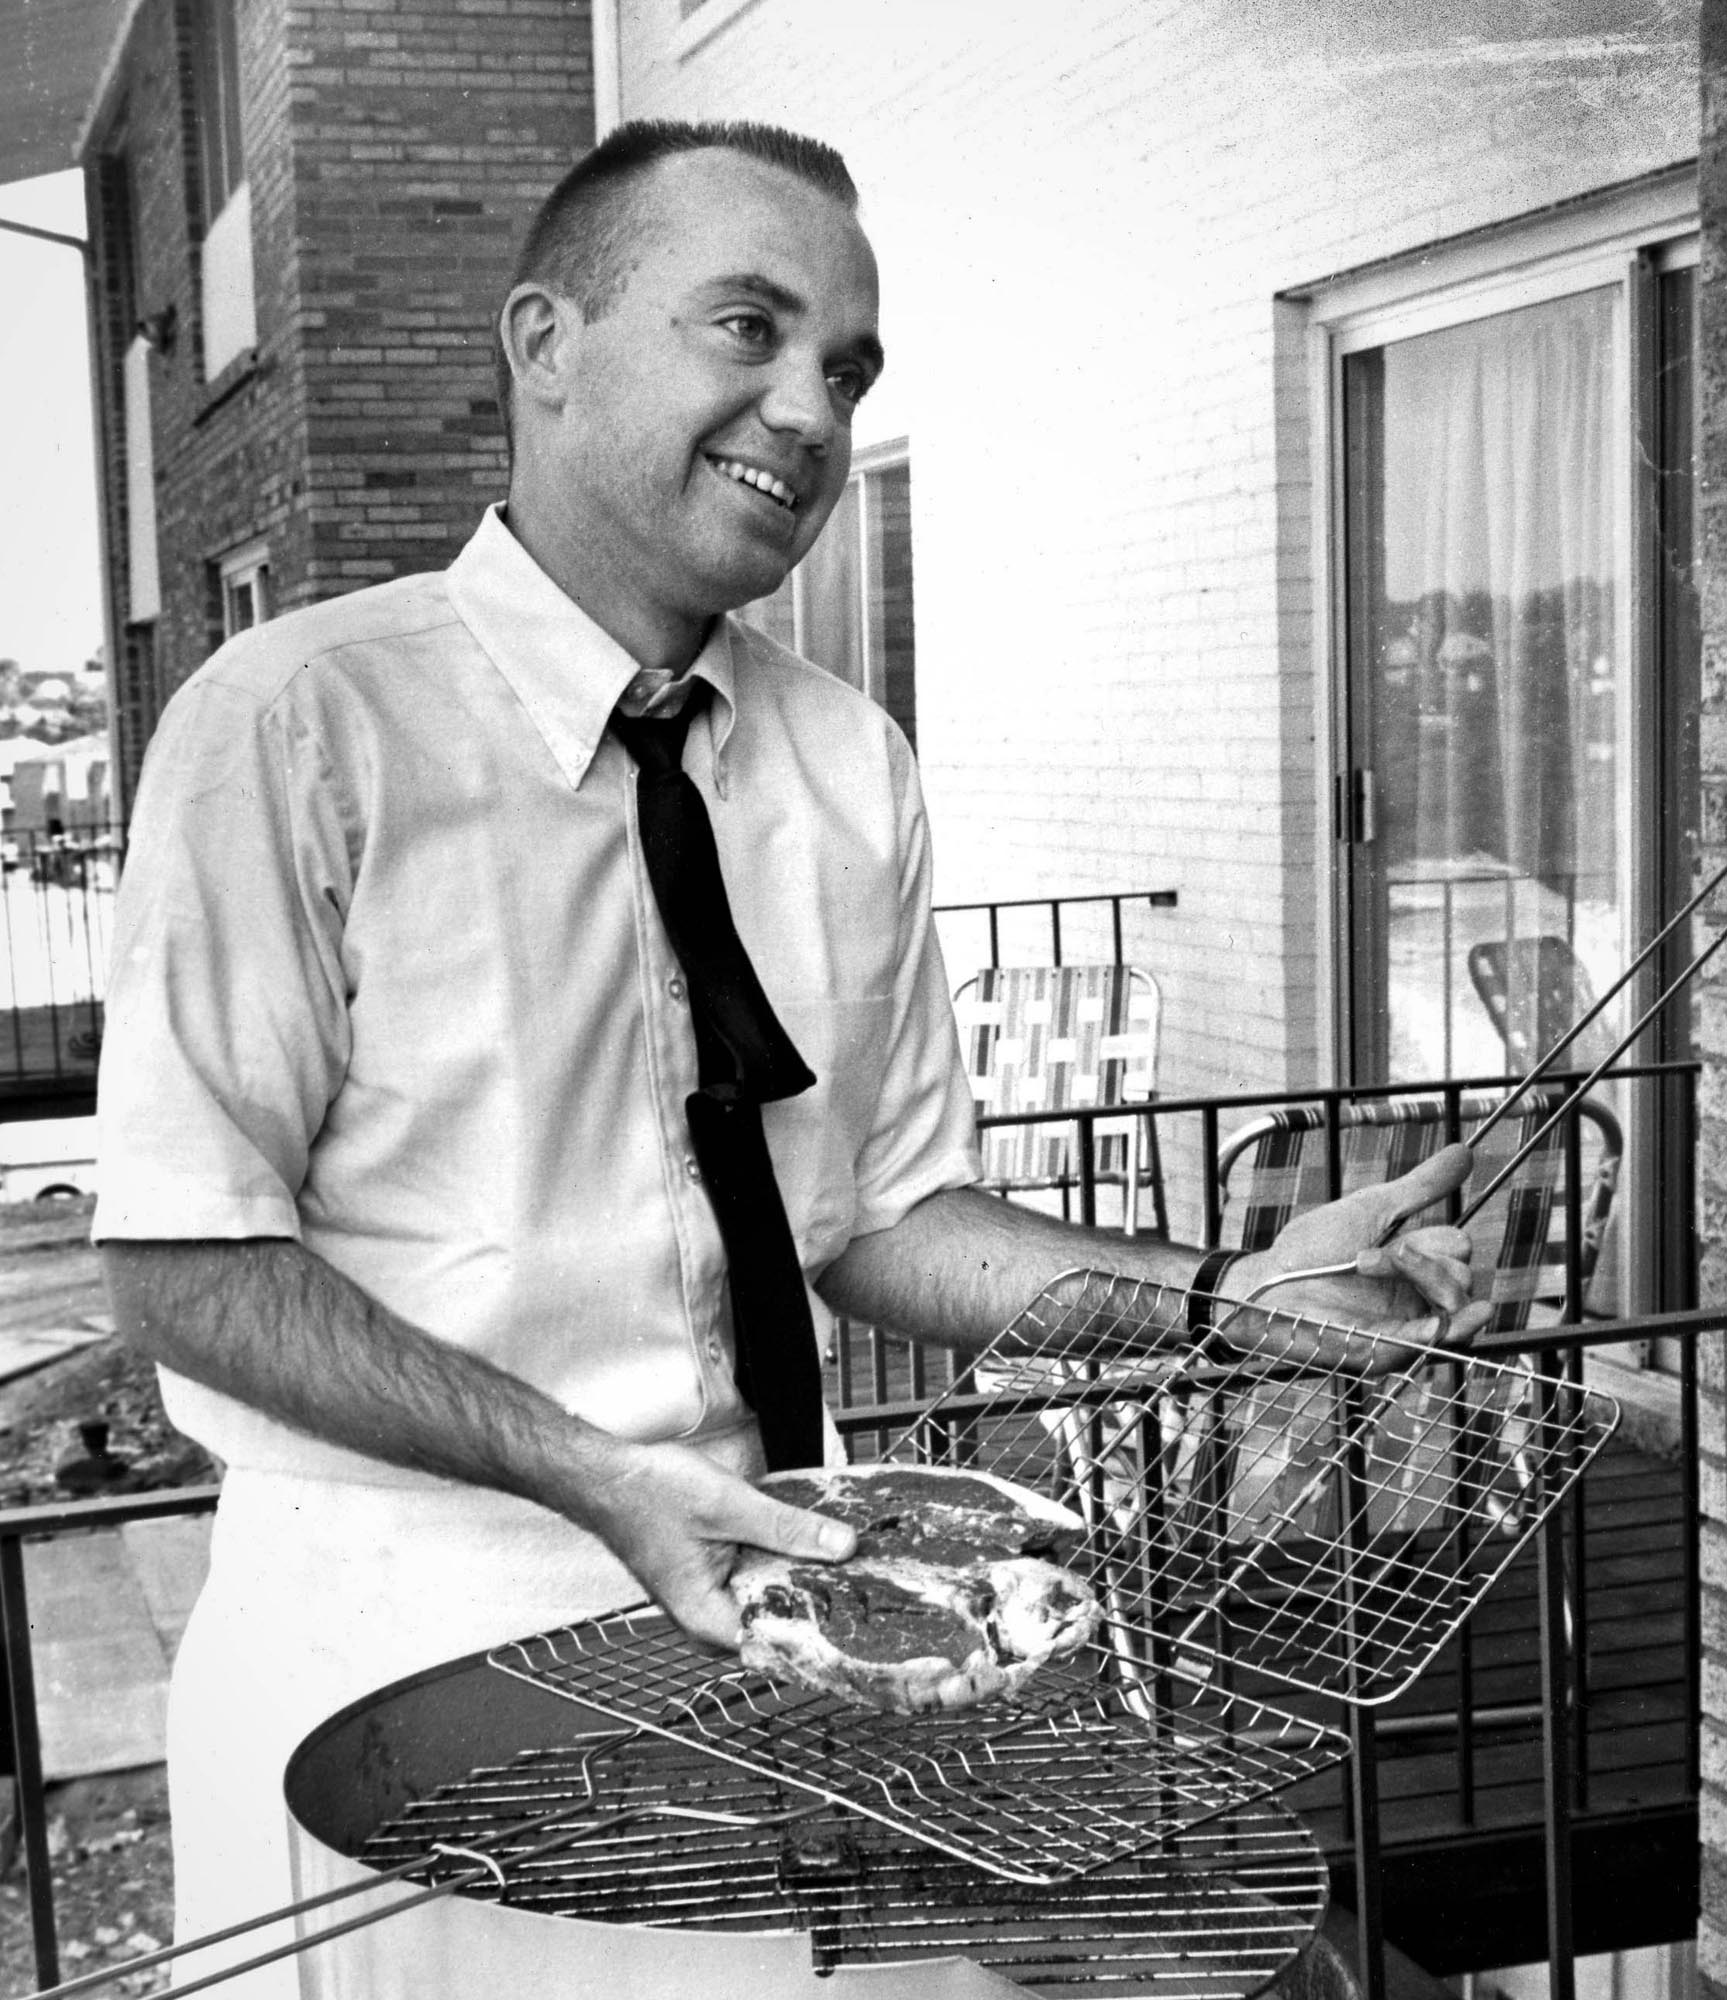 Dean Billick can cook if he must, but is looking for vivacious girl with brains. (Original caption for Aug. 4, 1968, Pittsburgh Press story.)